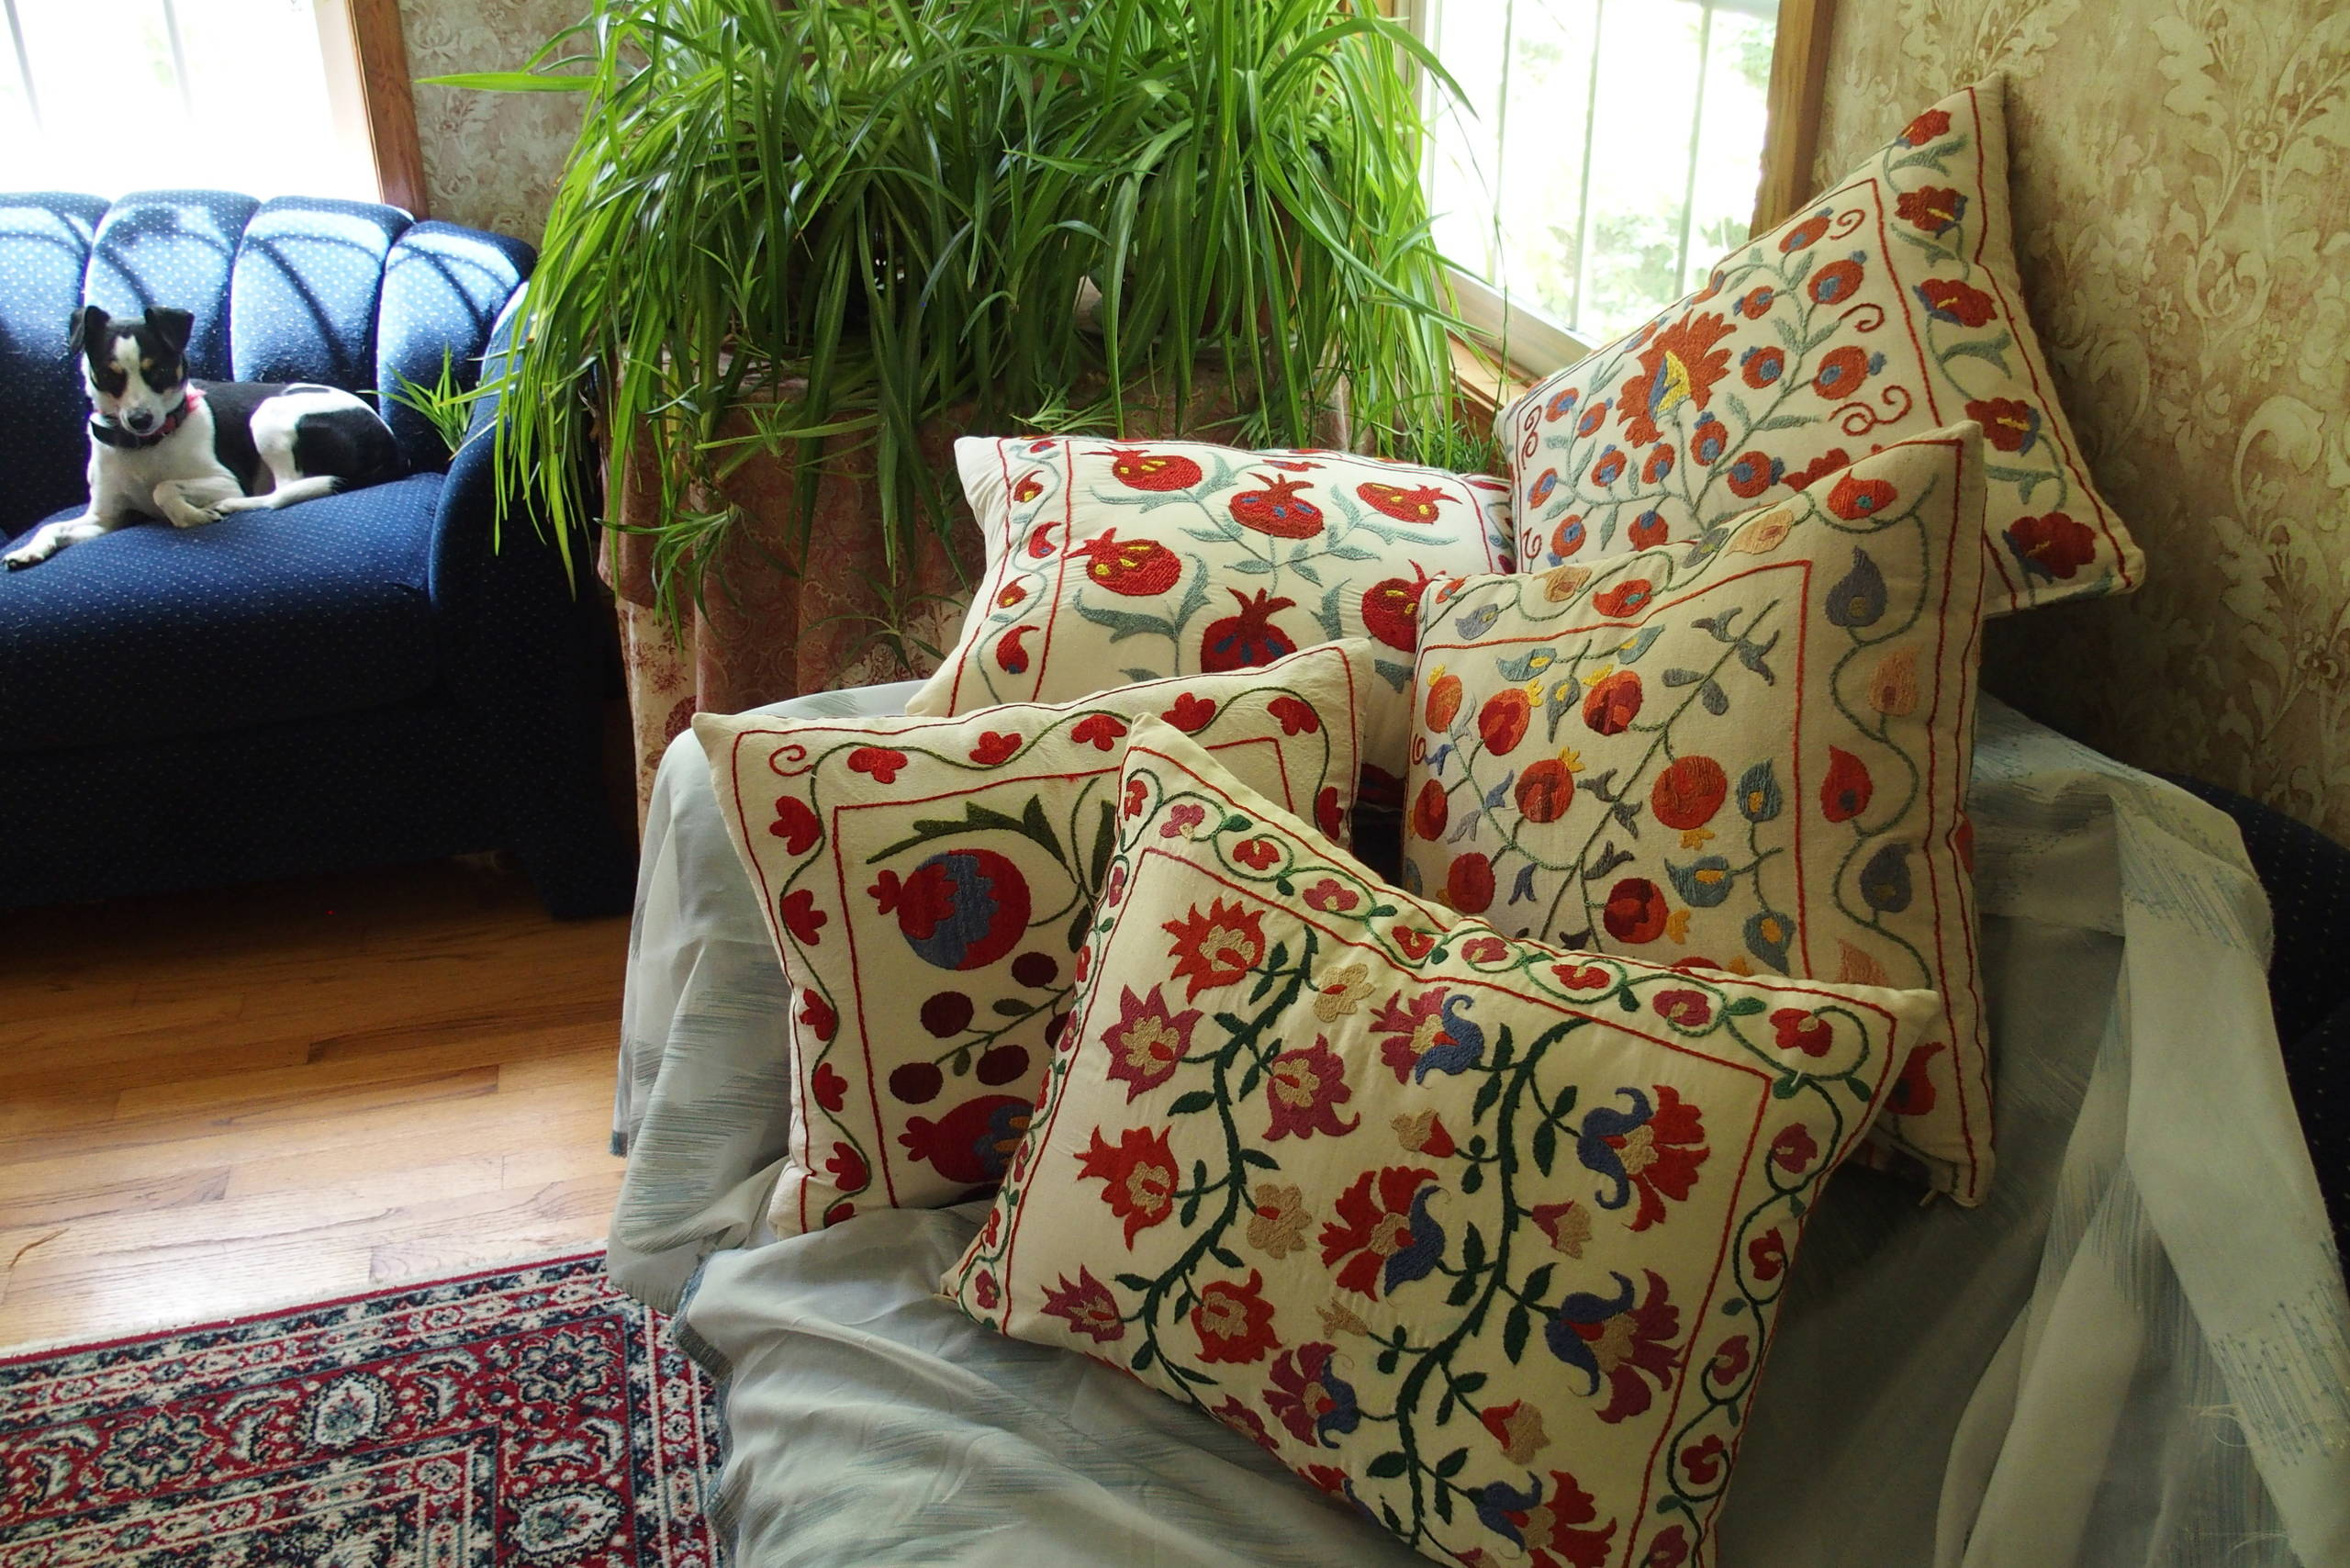 Decorative pillows made with embroidered towels from Turkey.